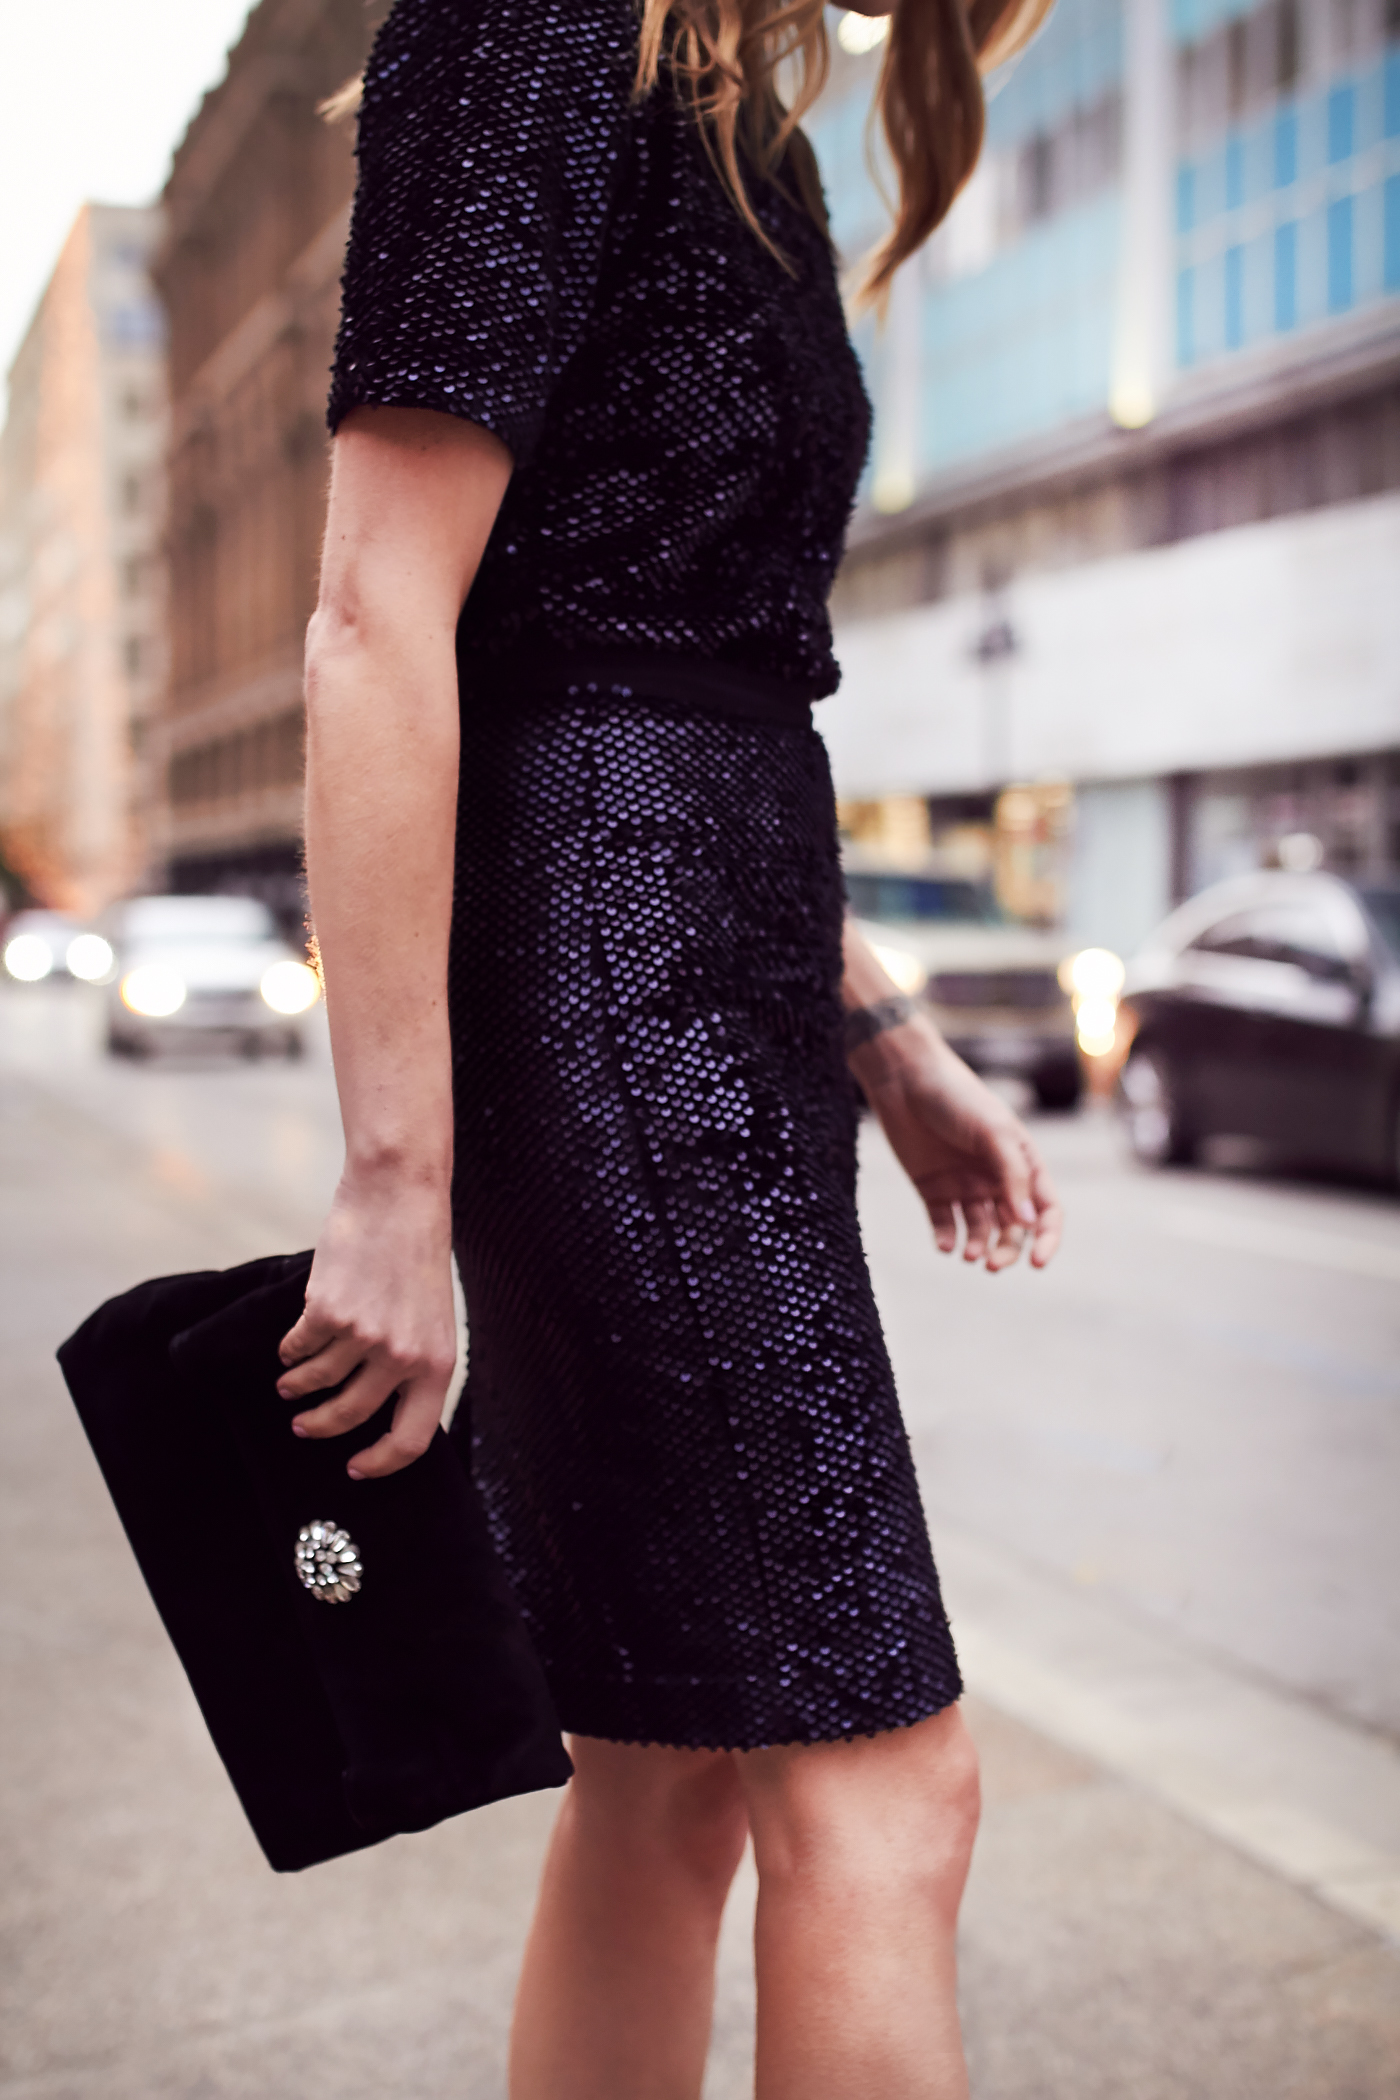 Holiday Outfit Party Dressing Sequin Top Pencil Skirt Black Pumps